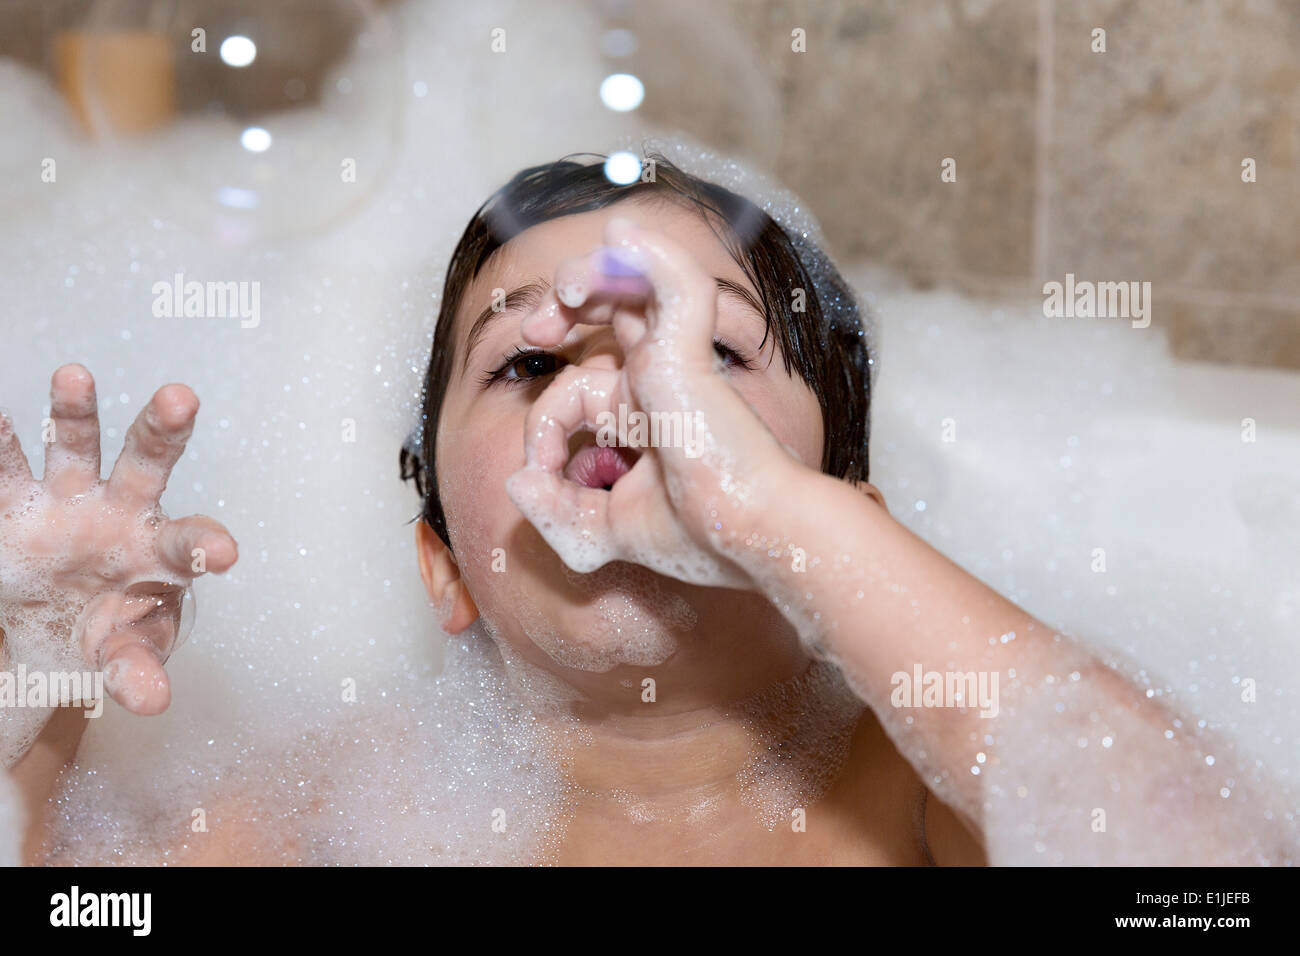 Young boy blowing bubbles in bubble bath Stock Photo